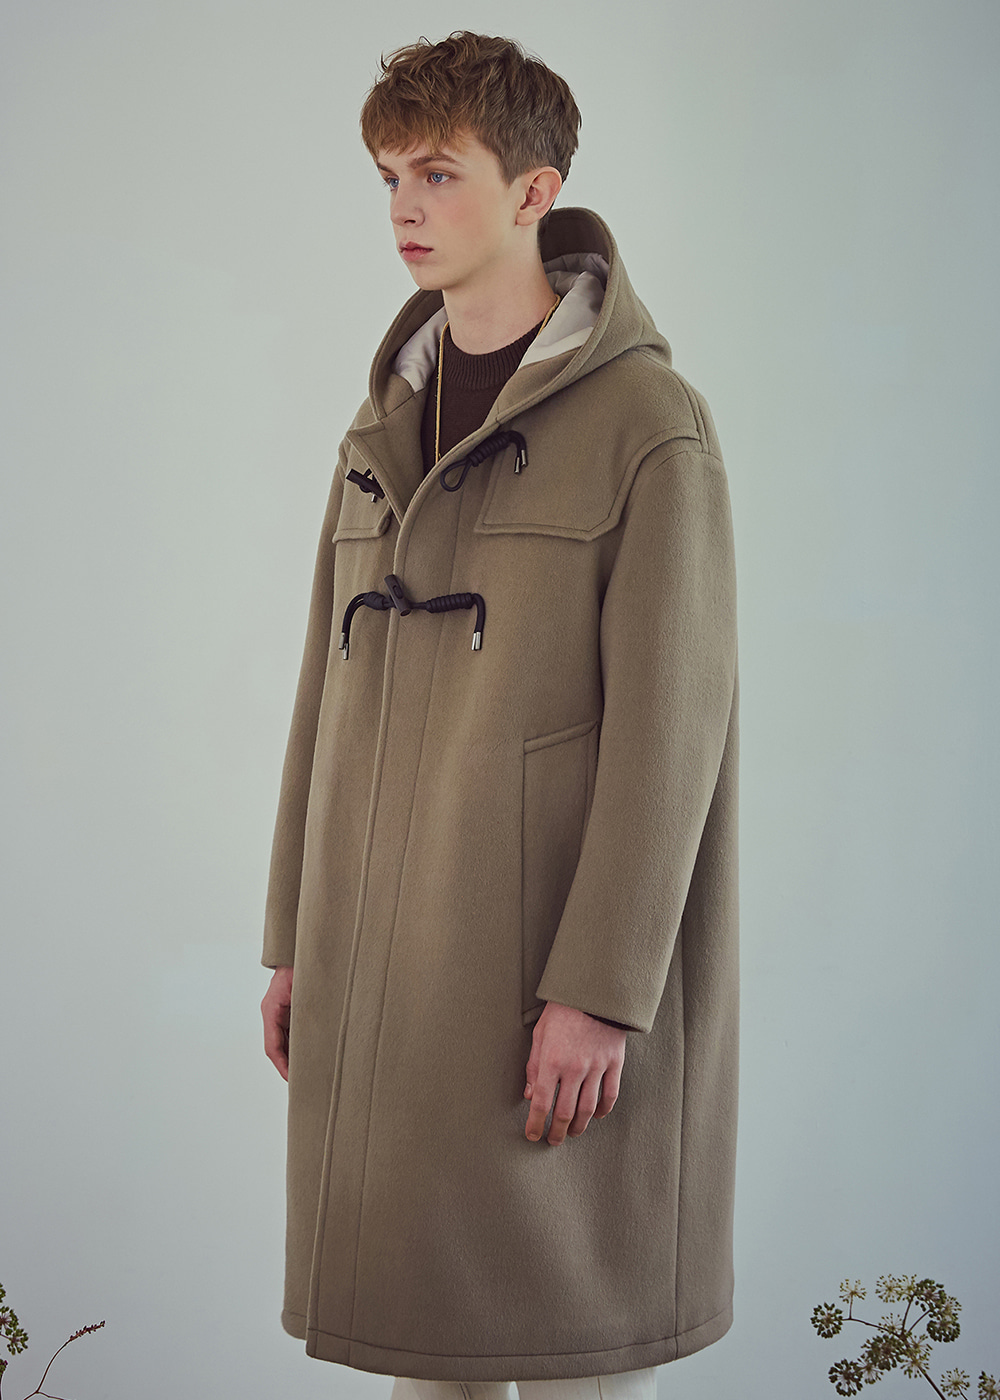 Oversized Wool Dufflecoat - Dusty Beige